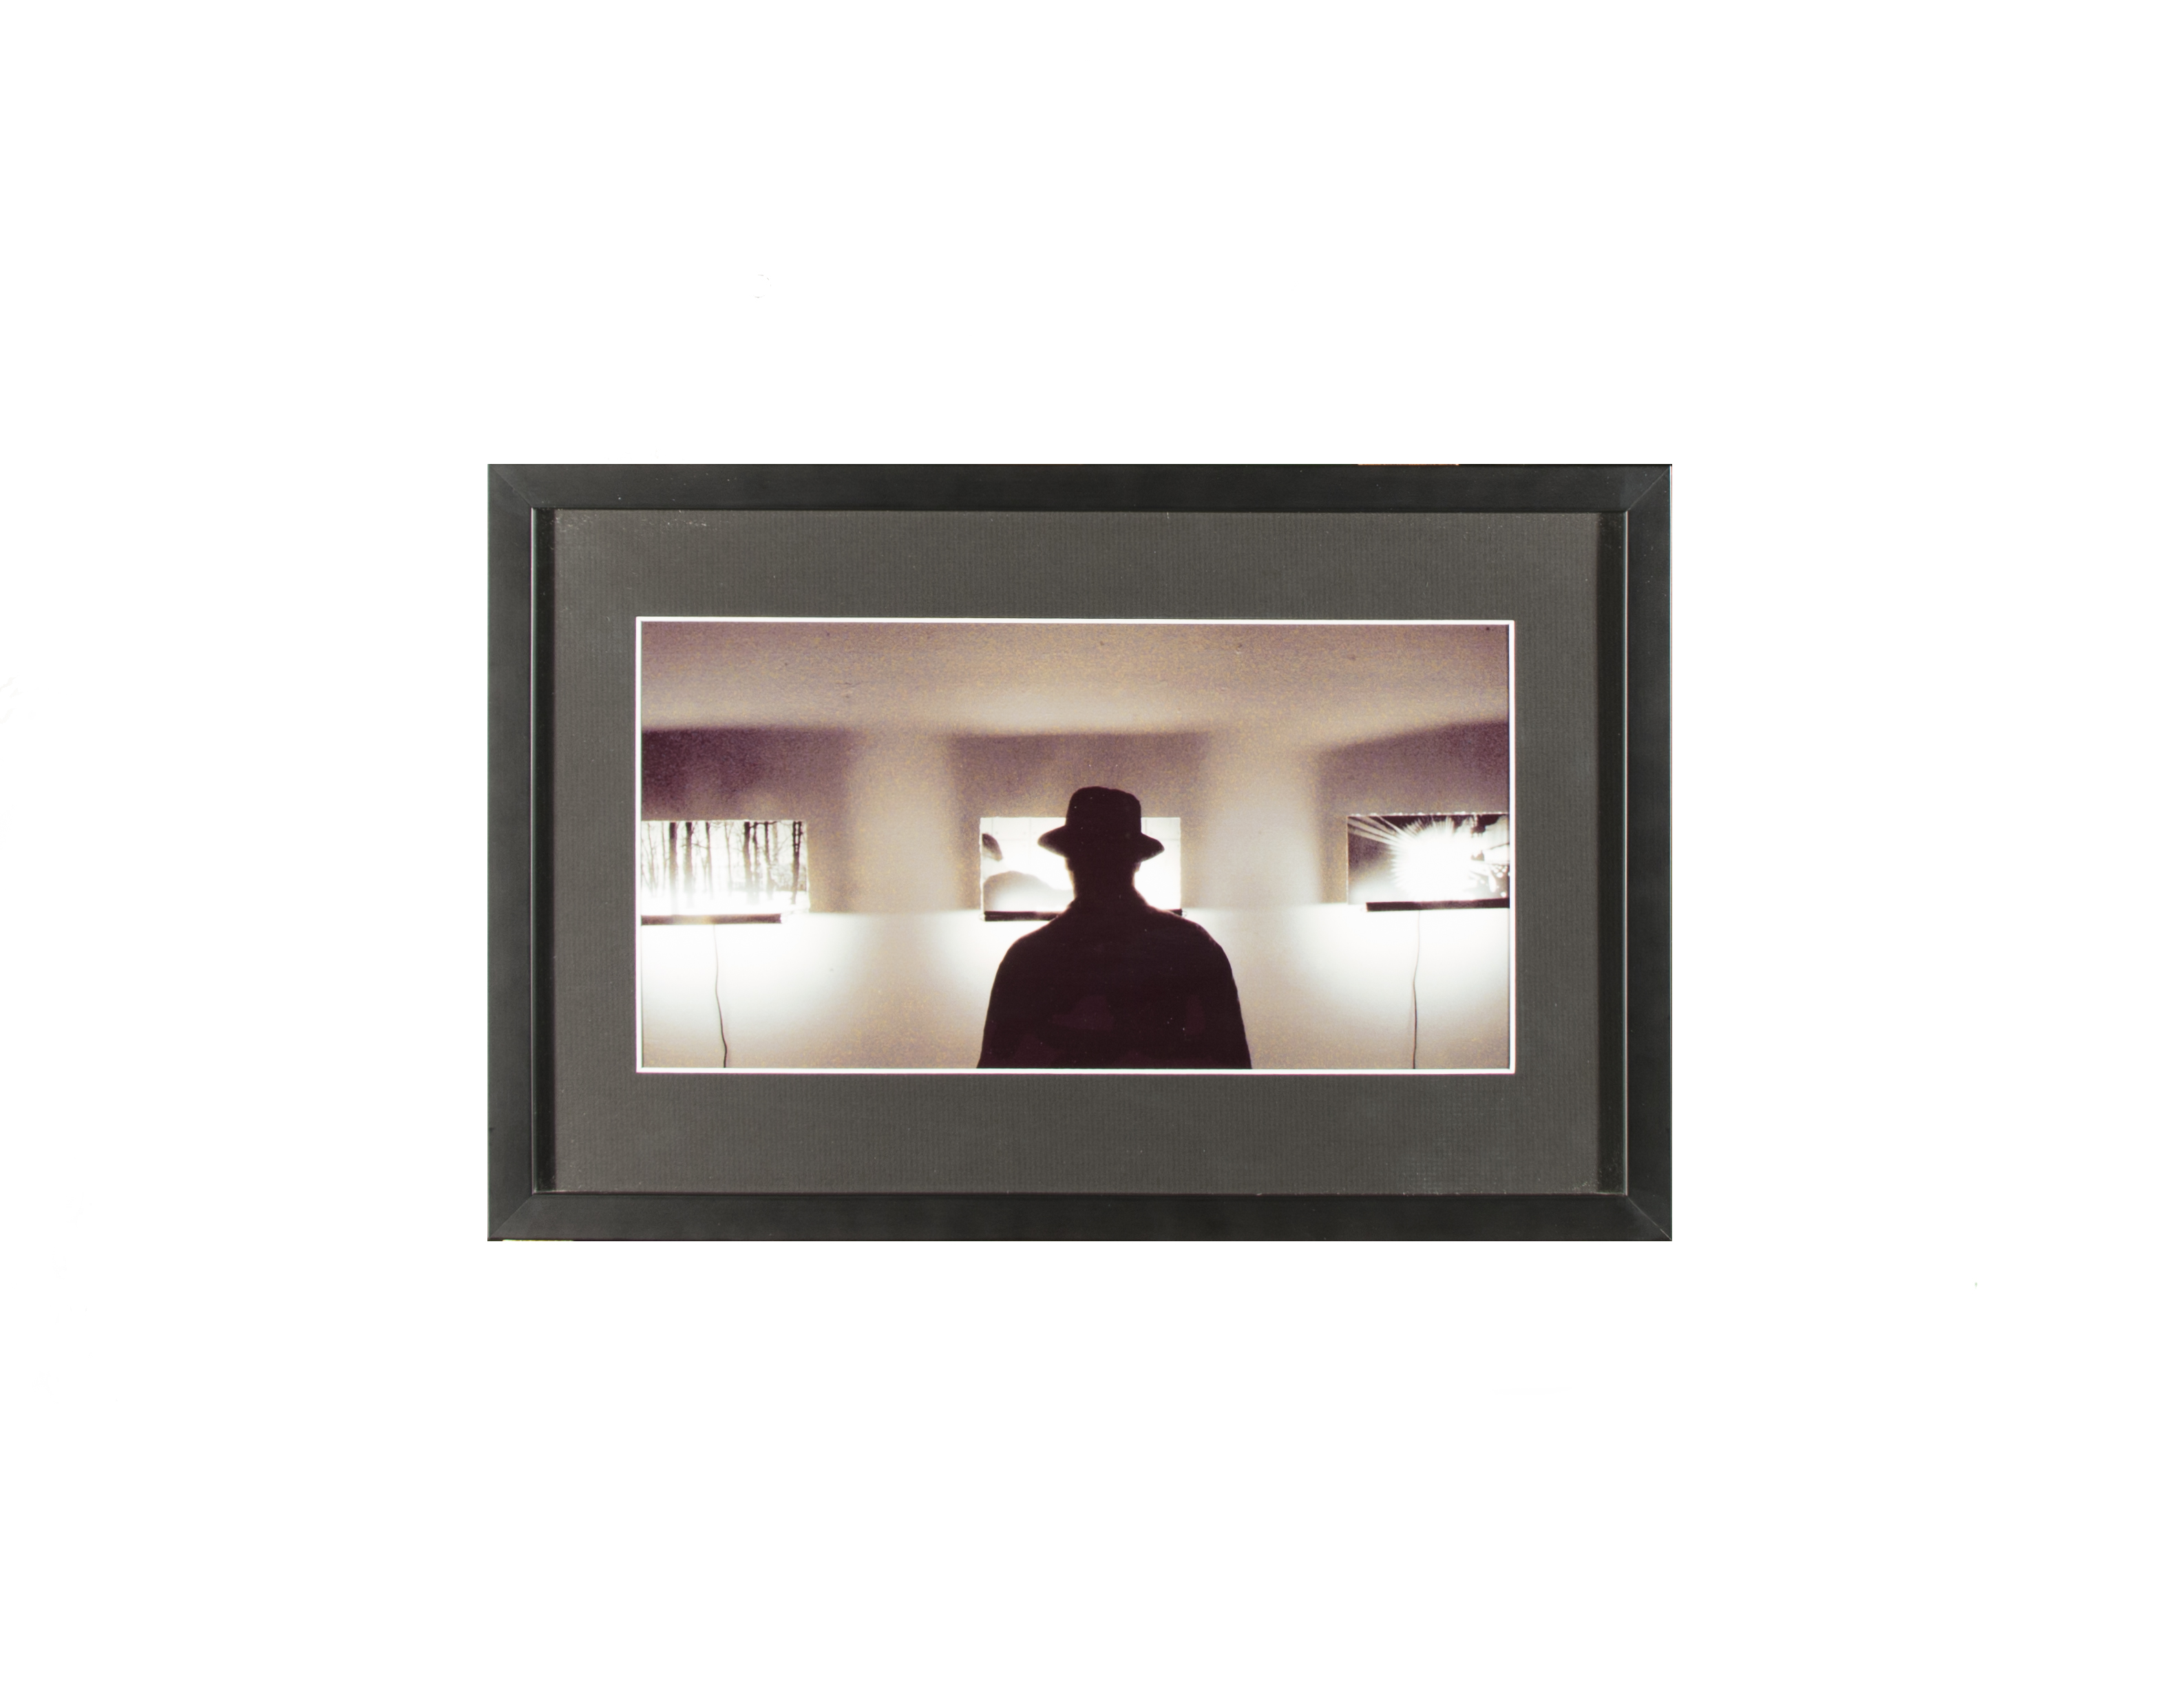 silhouette of a man in a hat in front of three windows